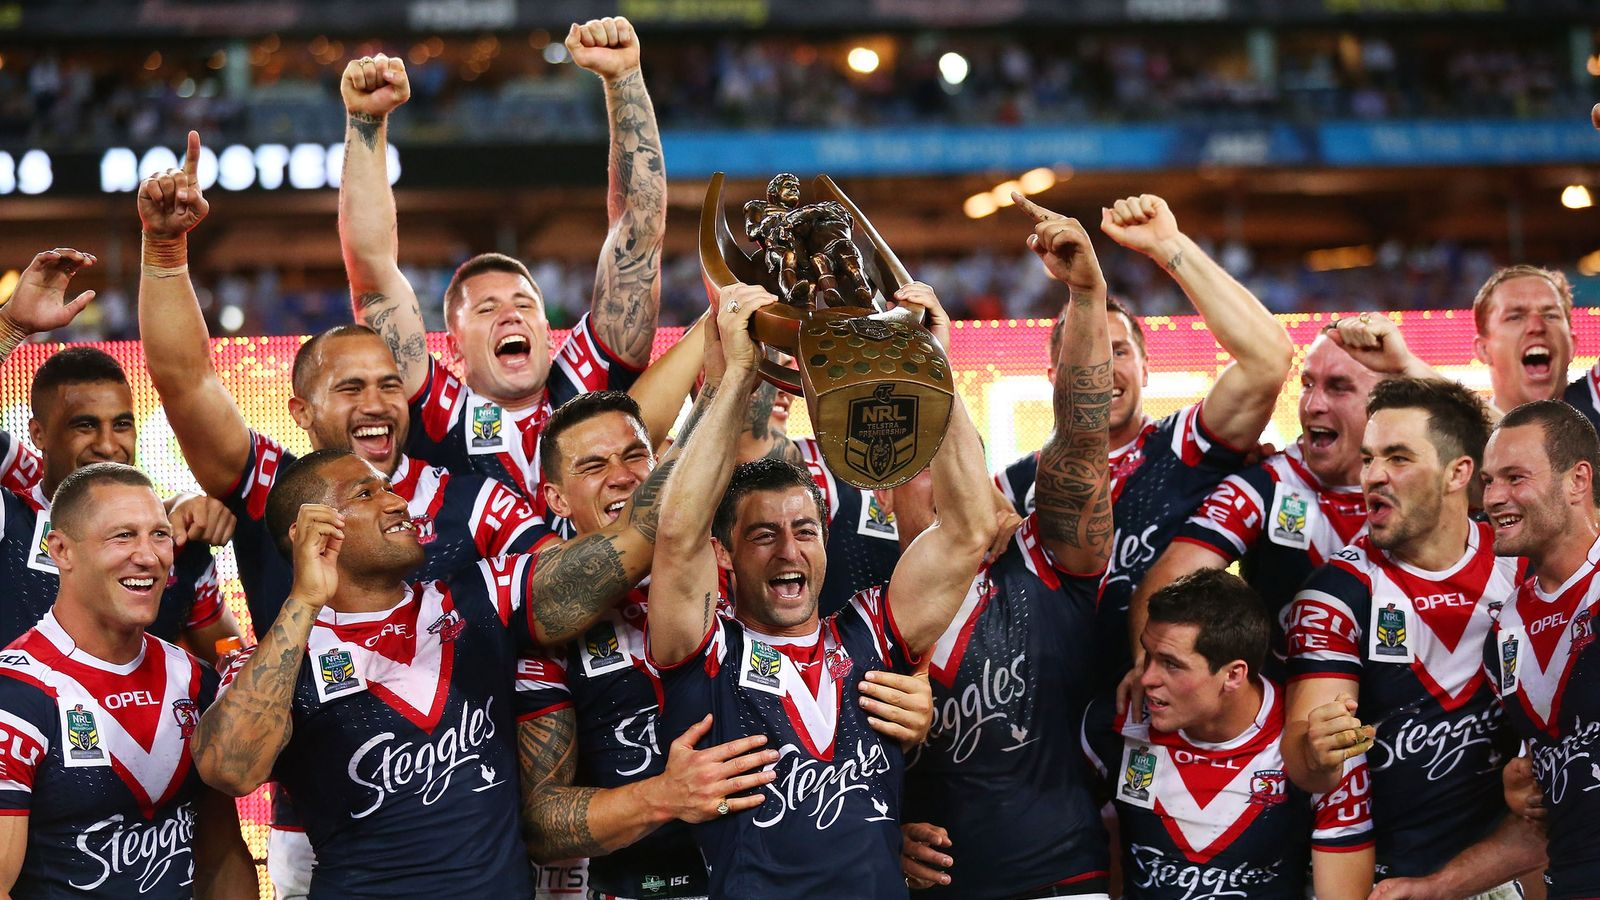 Nrl Grand Final Sydney Roosters Hit Back To Shock Manly Sea Eagles Rugby League News Sky Sports